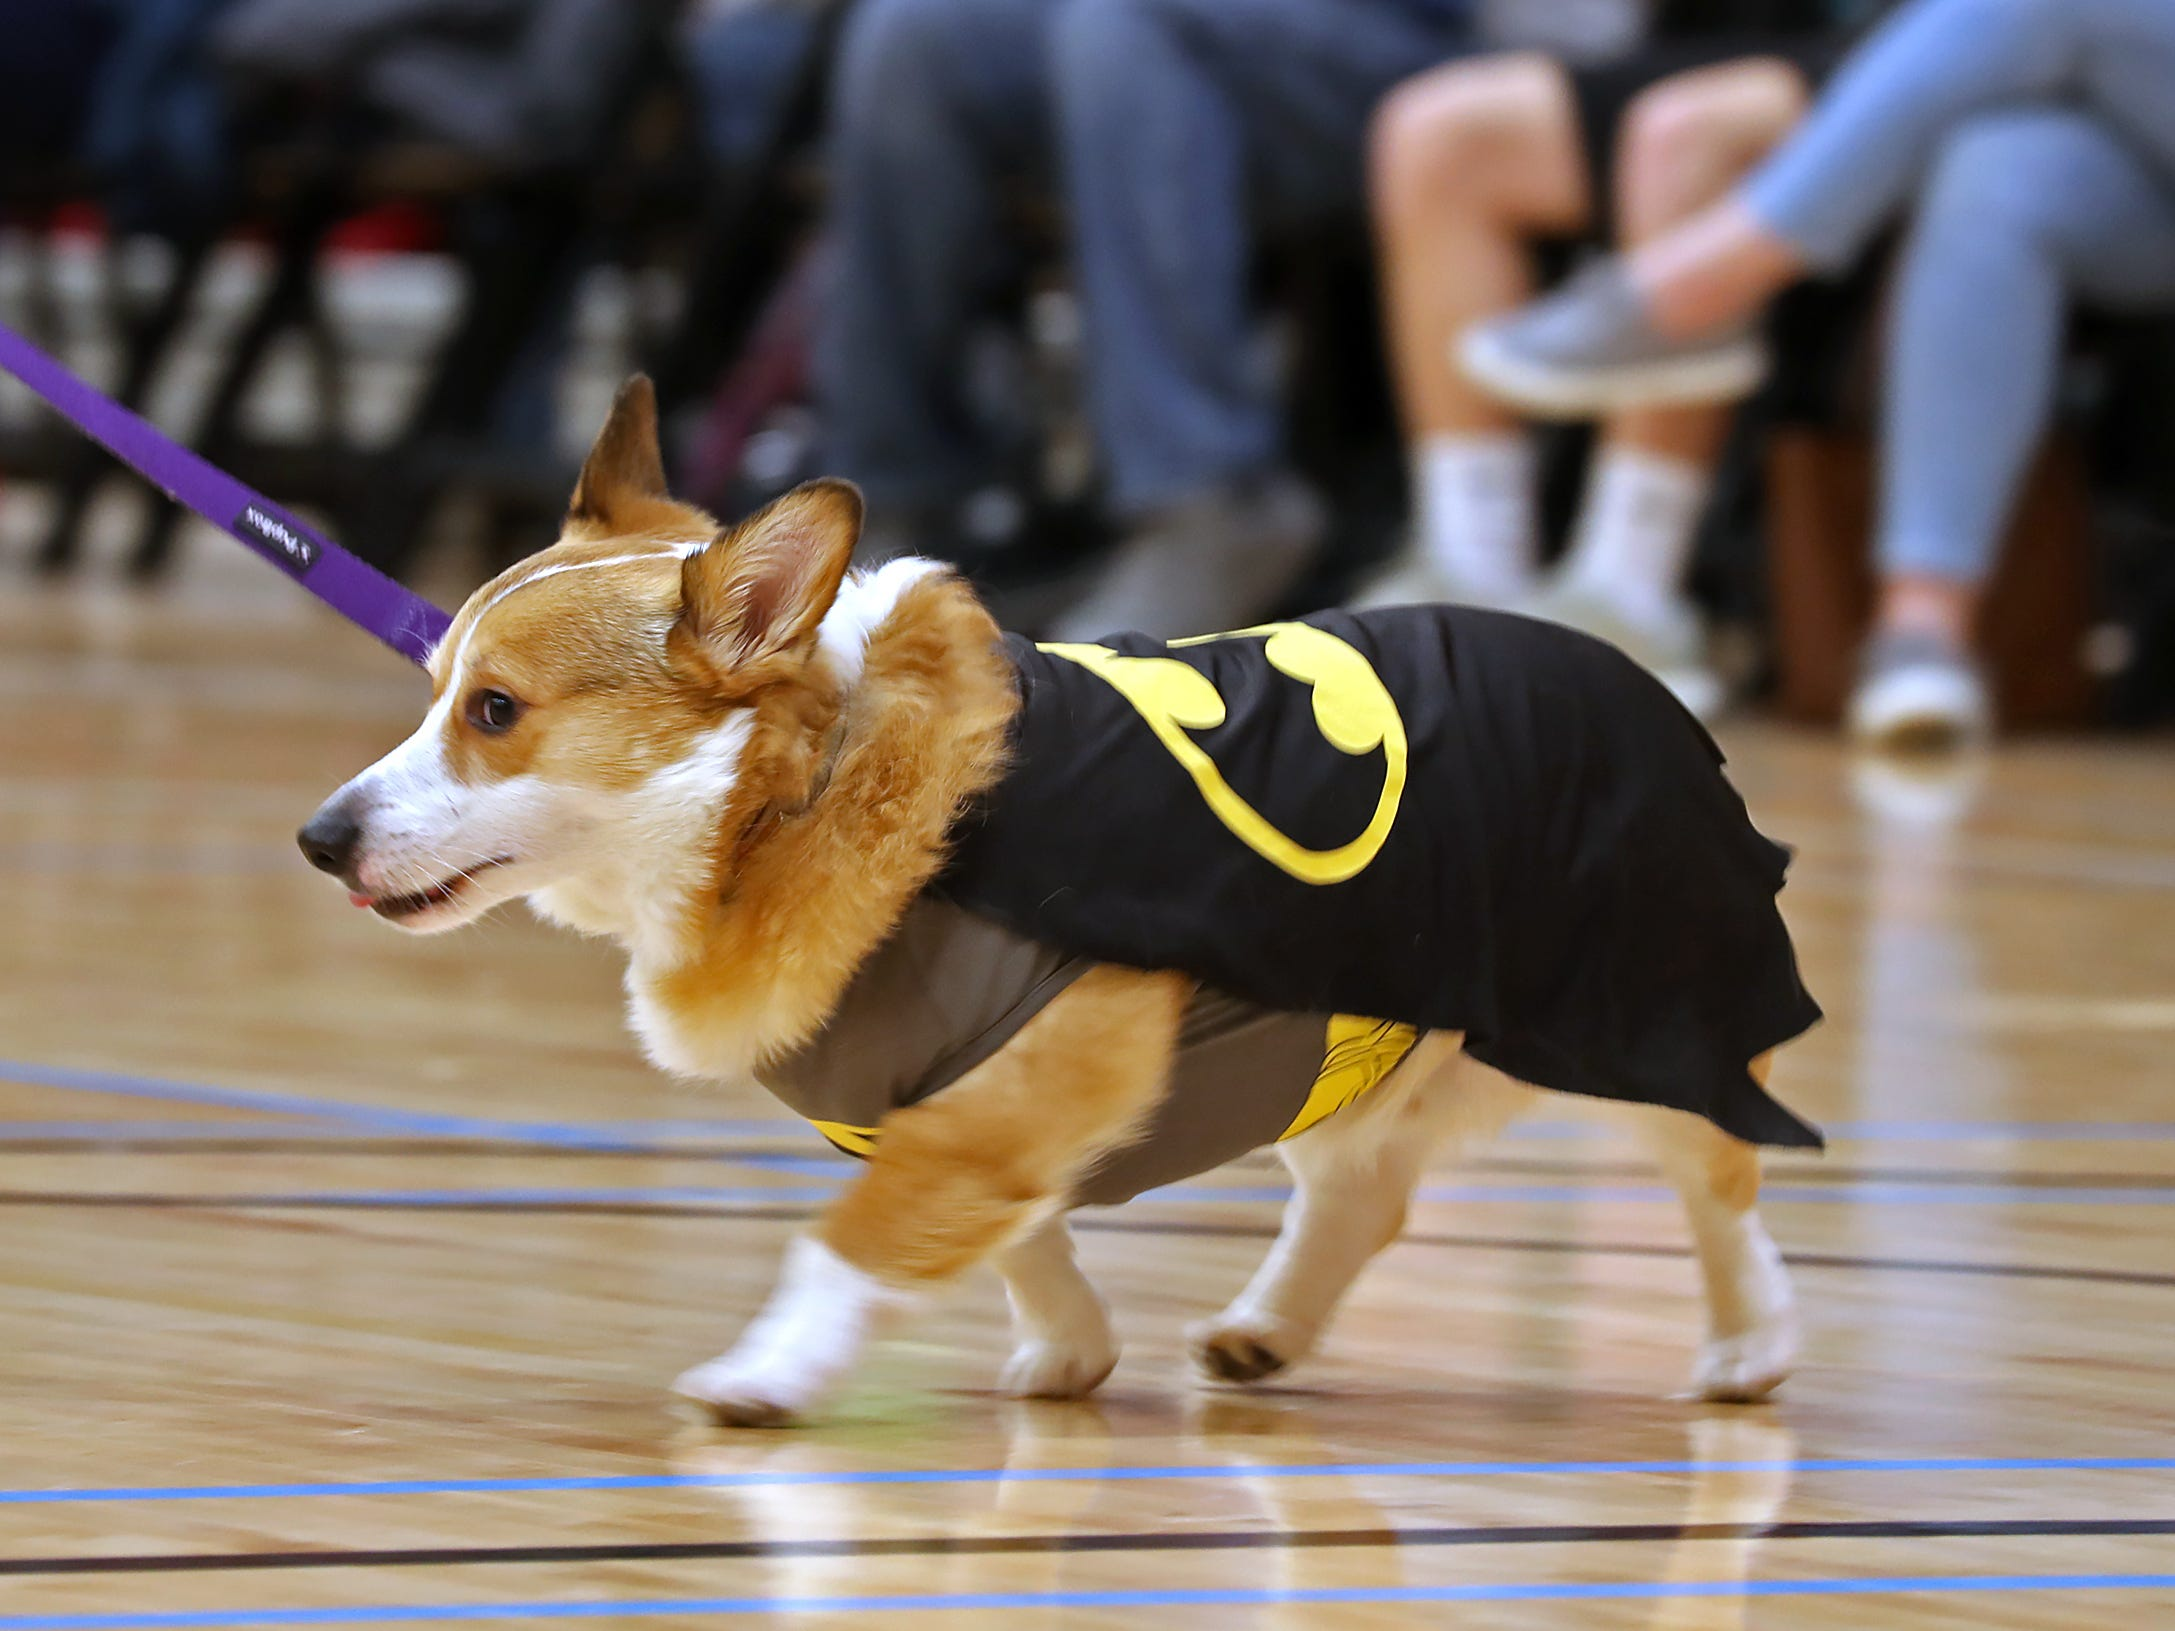 Zero walks the runway during the costume contest at the Indianapolis Corgi Limbo & Costume Contest at IUPUI, Sunday, April 14, 2019.  The event benefits children orphaned by HIV/AIDS in eSwatini, Africa.  It is presented by the Give Hope, Fight Poverty IUPUI chapter.